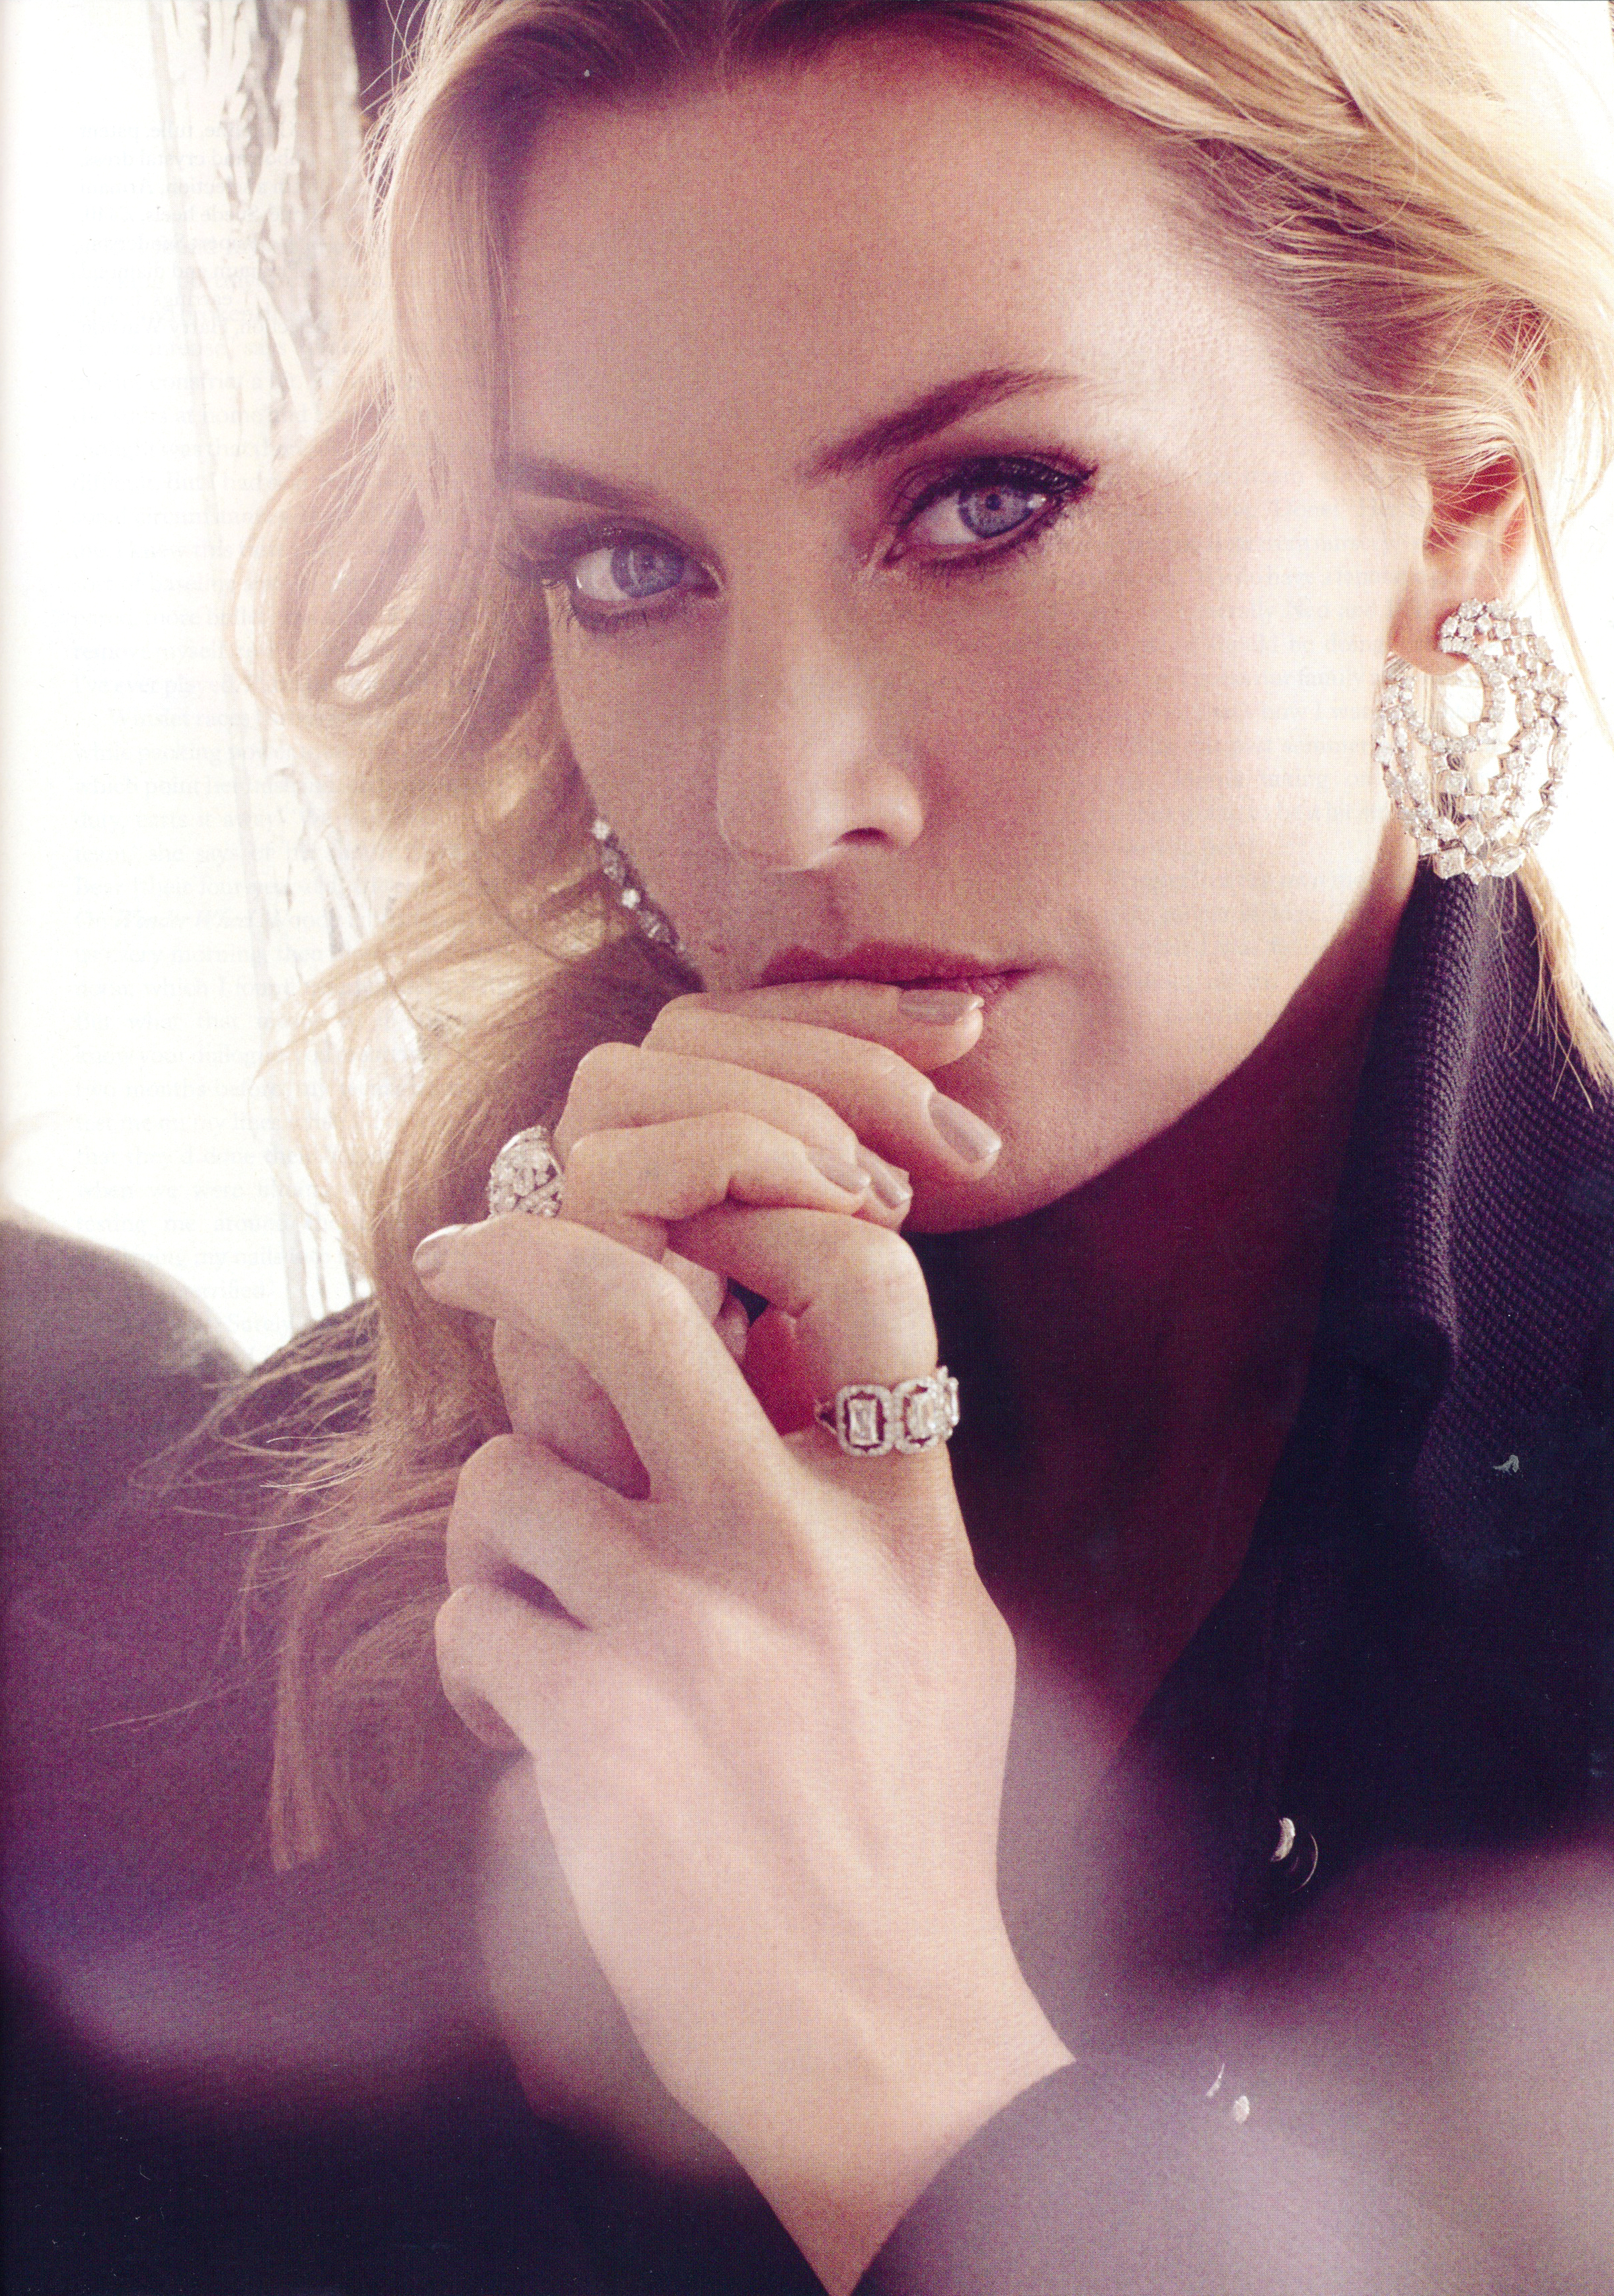 Kate Winslet Archives - Marion Hume